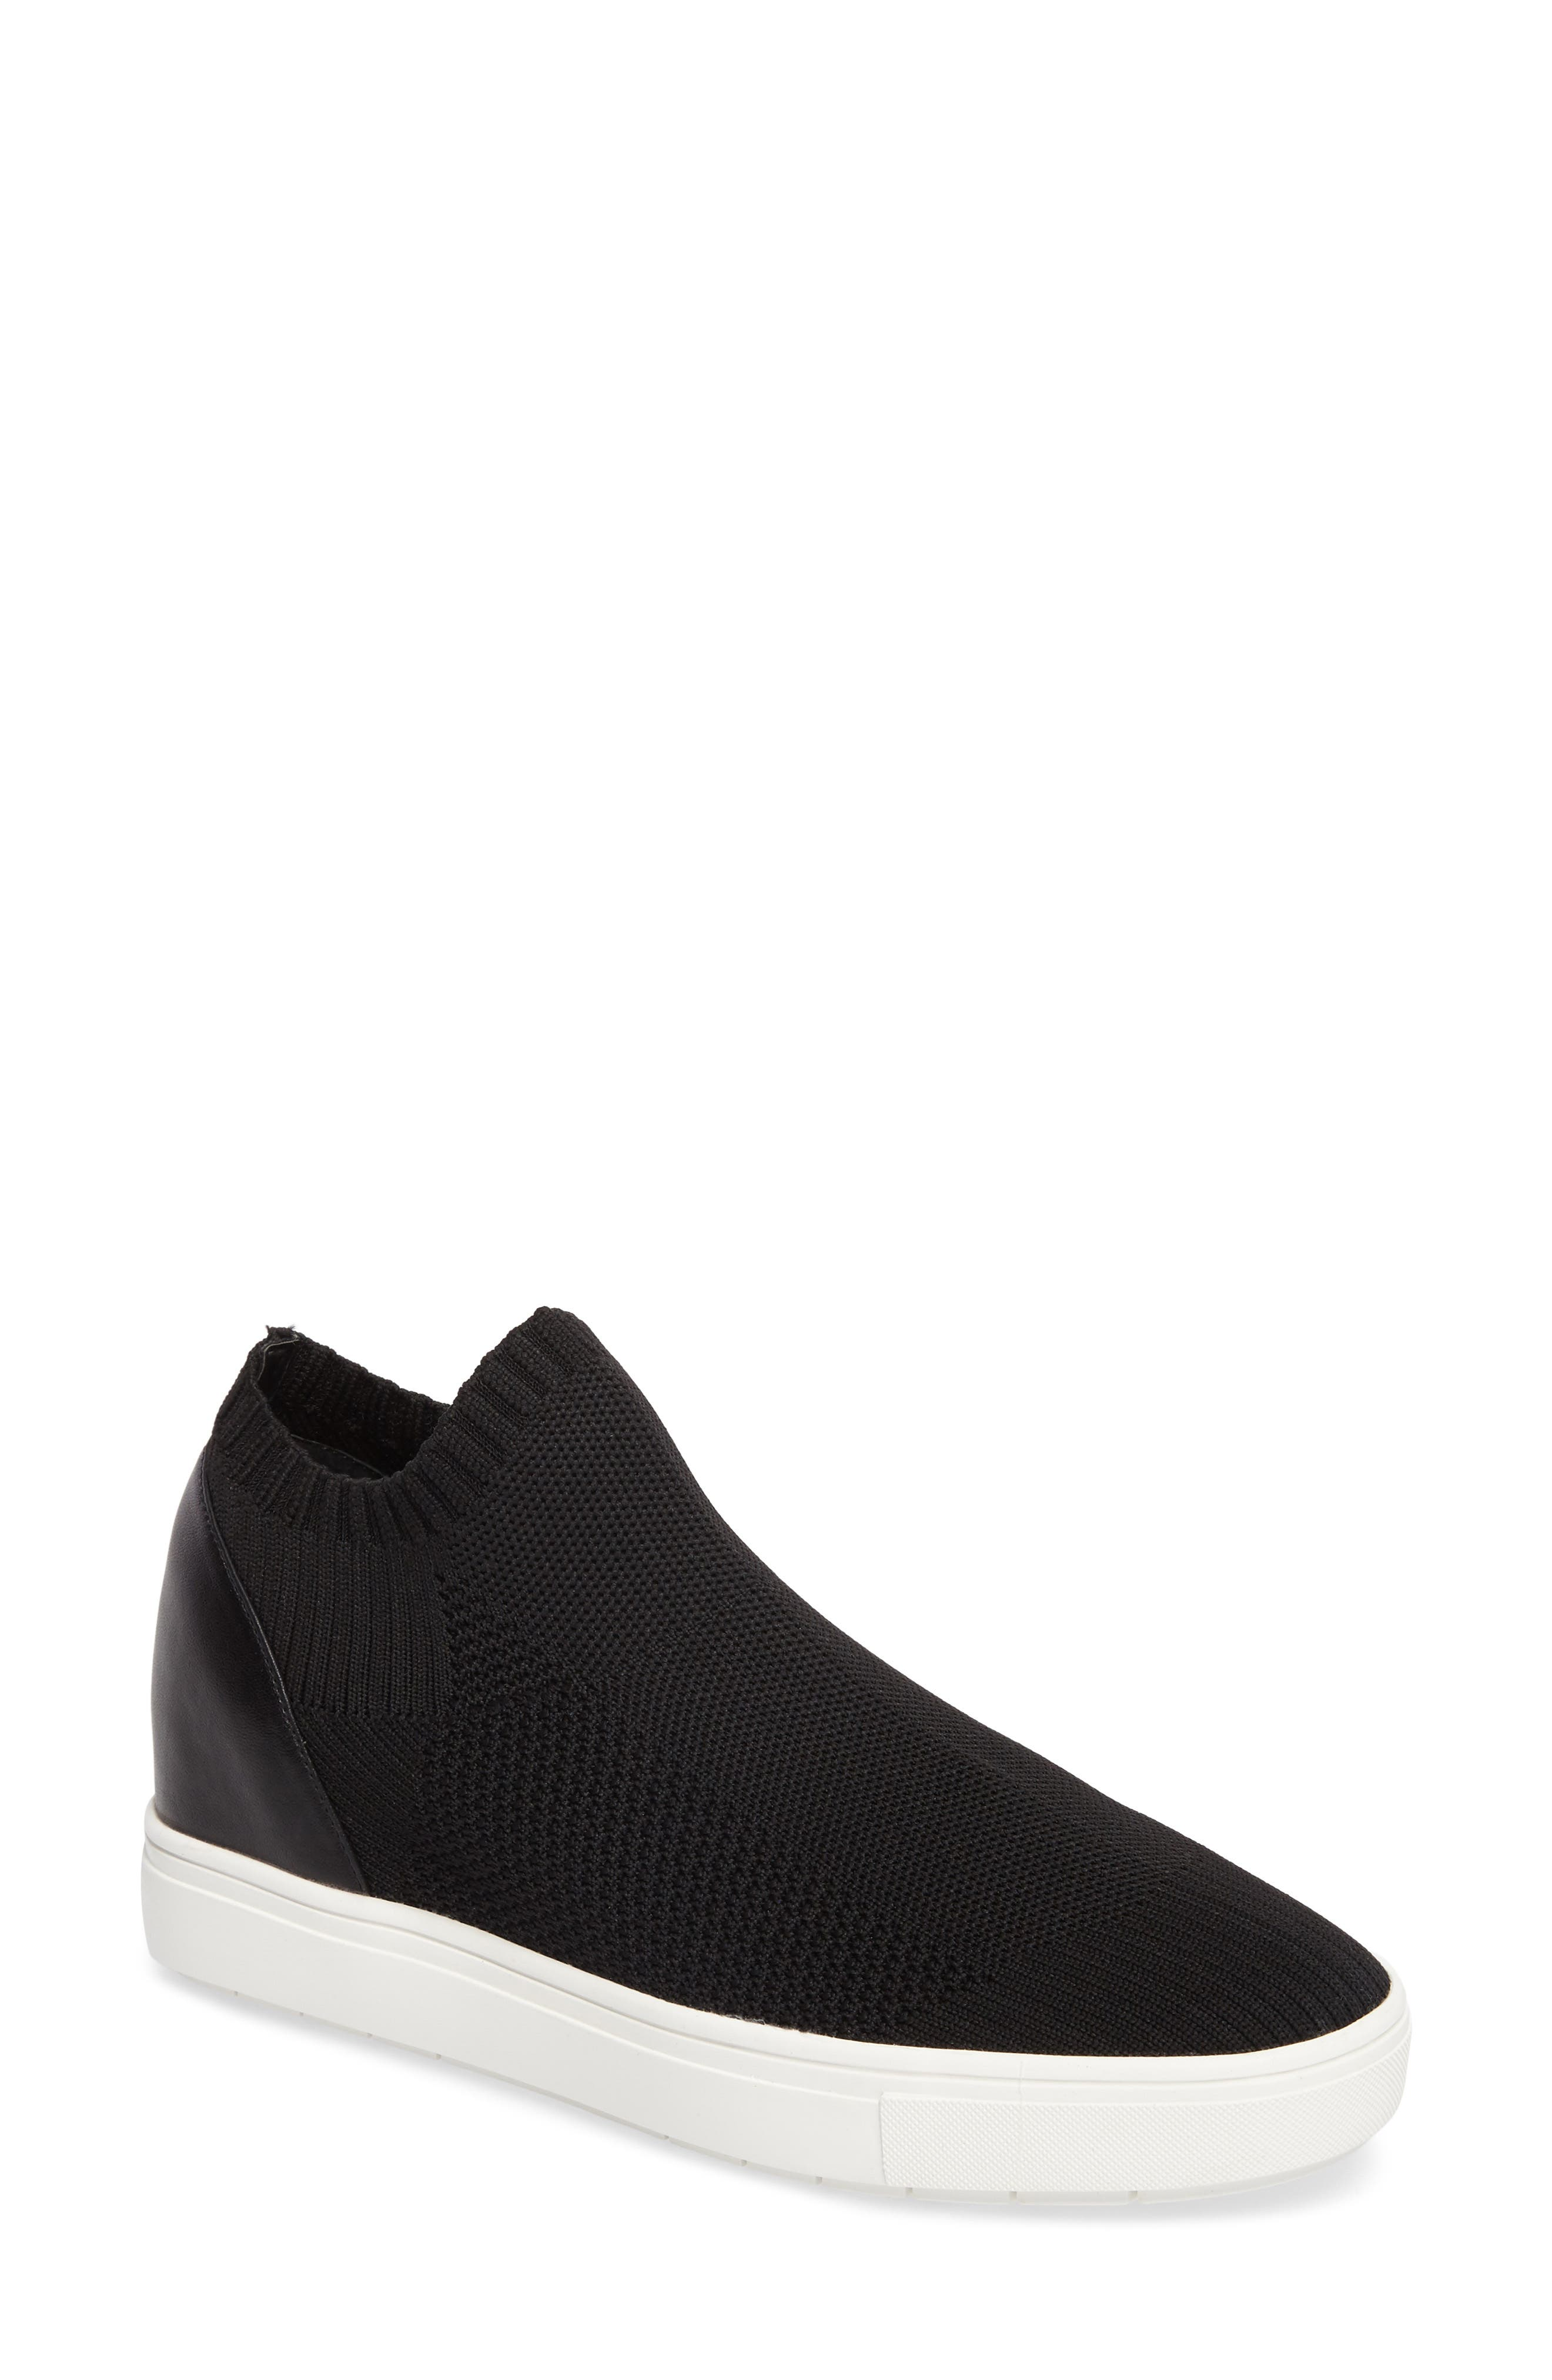 Sly Hidden Wedge Knit Sneaker,                         Main,                         color, 003